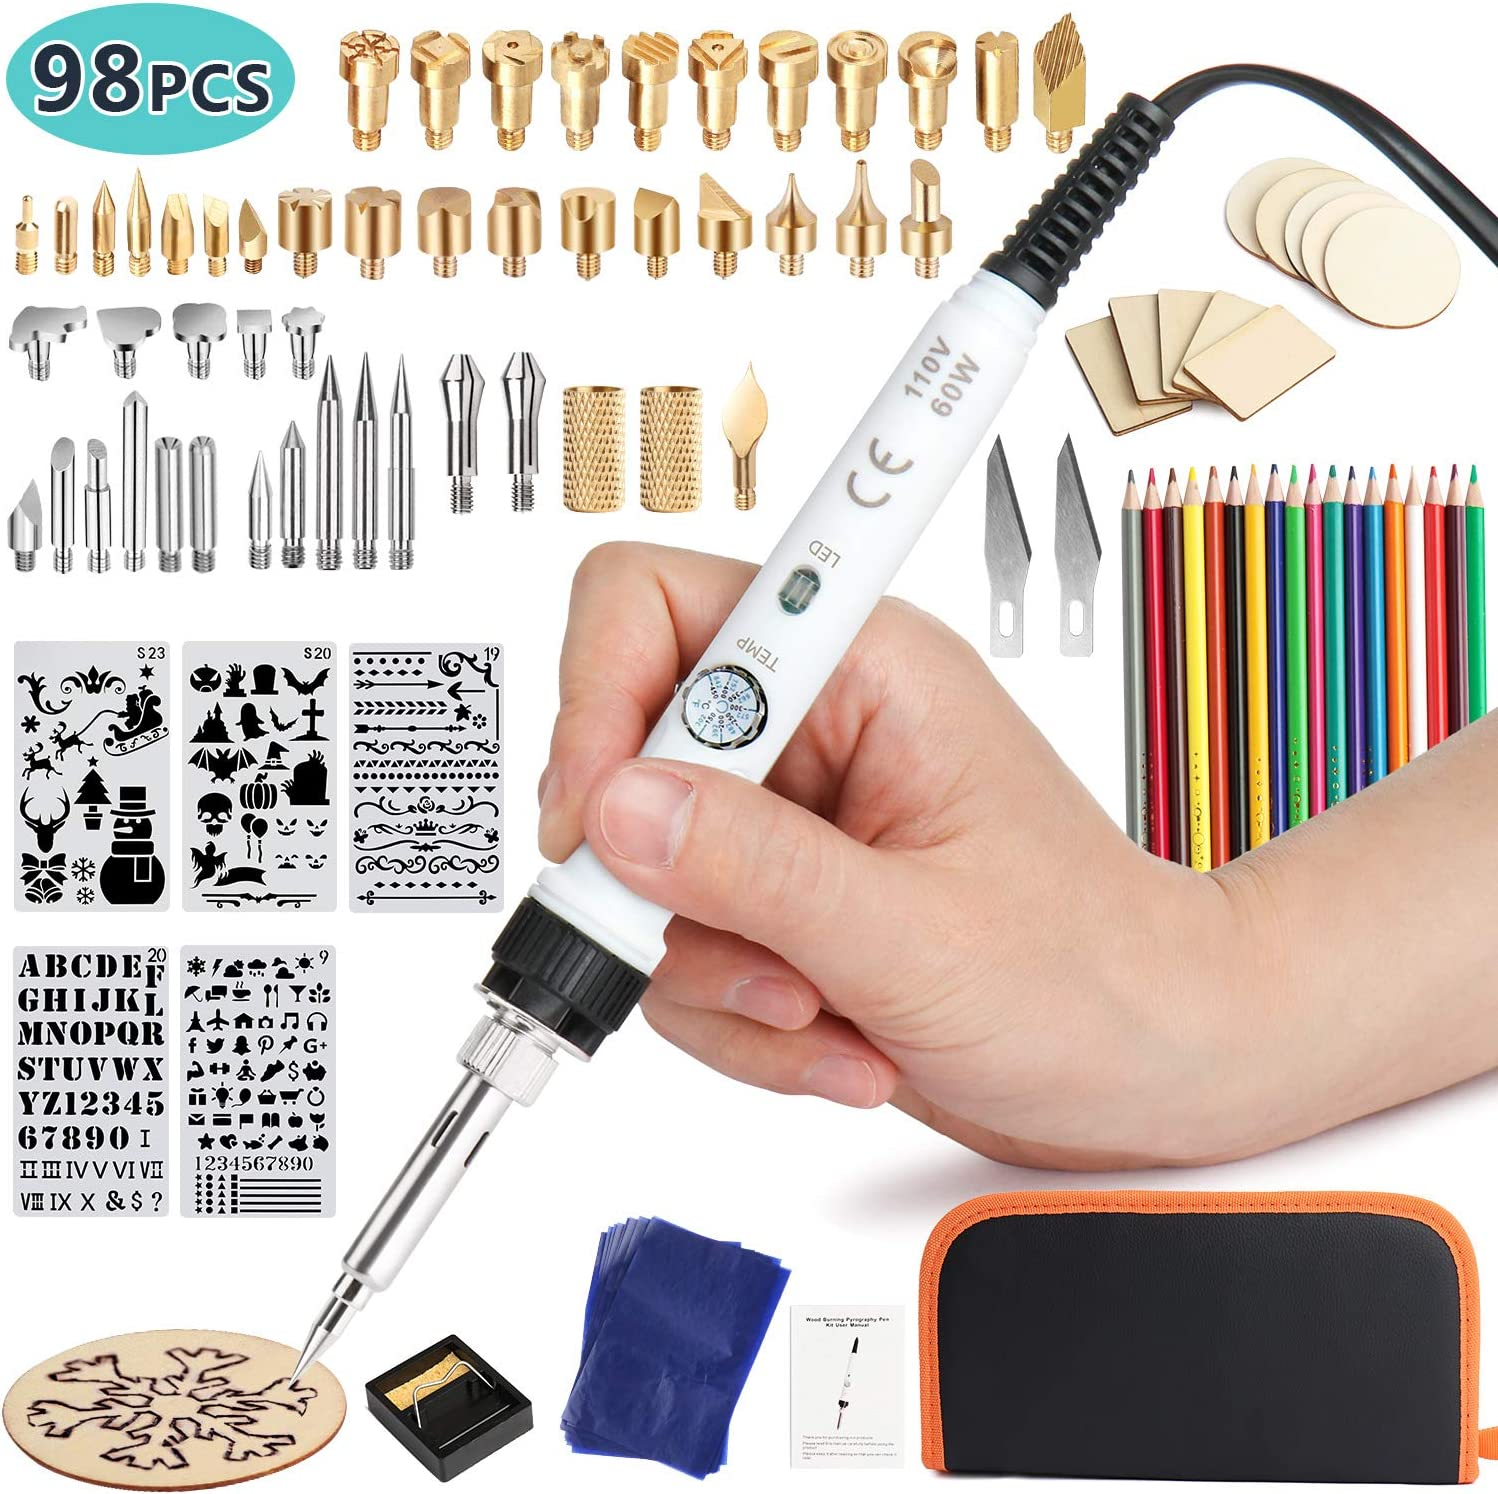 302-842℉ 150~450 ℃ Professional Wood Burning Tool 98Pcs Wood Burning Kit Adjustable Thermostatic Digital-Controlled Pyrography Pen Kit Tool